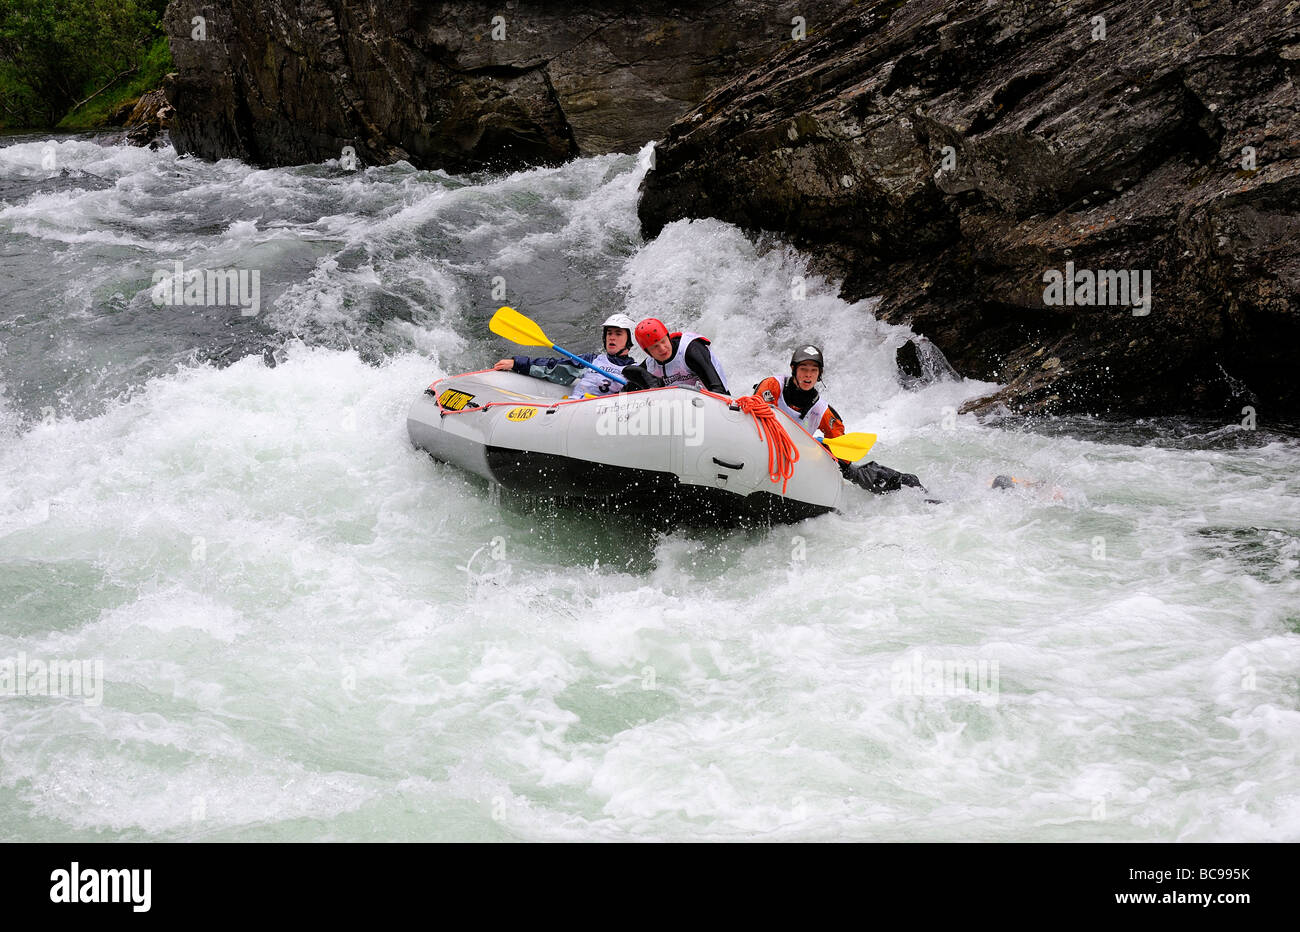 Rafting Competition In White Water River At Voss Norway